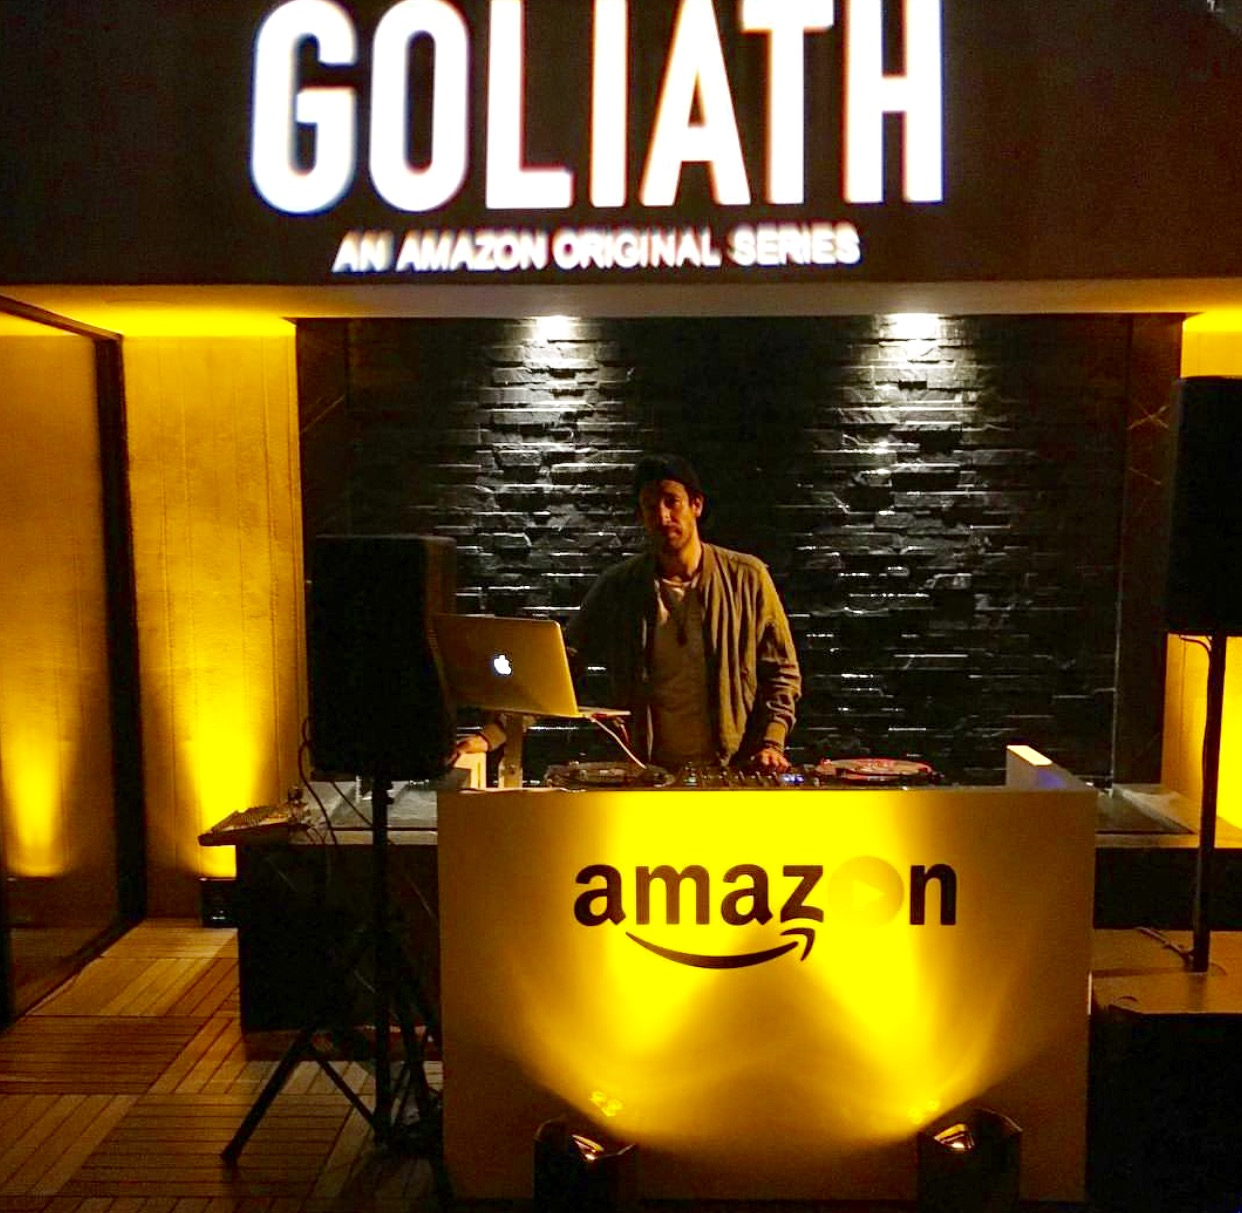 Amazon launch for Goliah